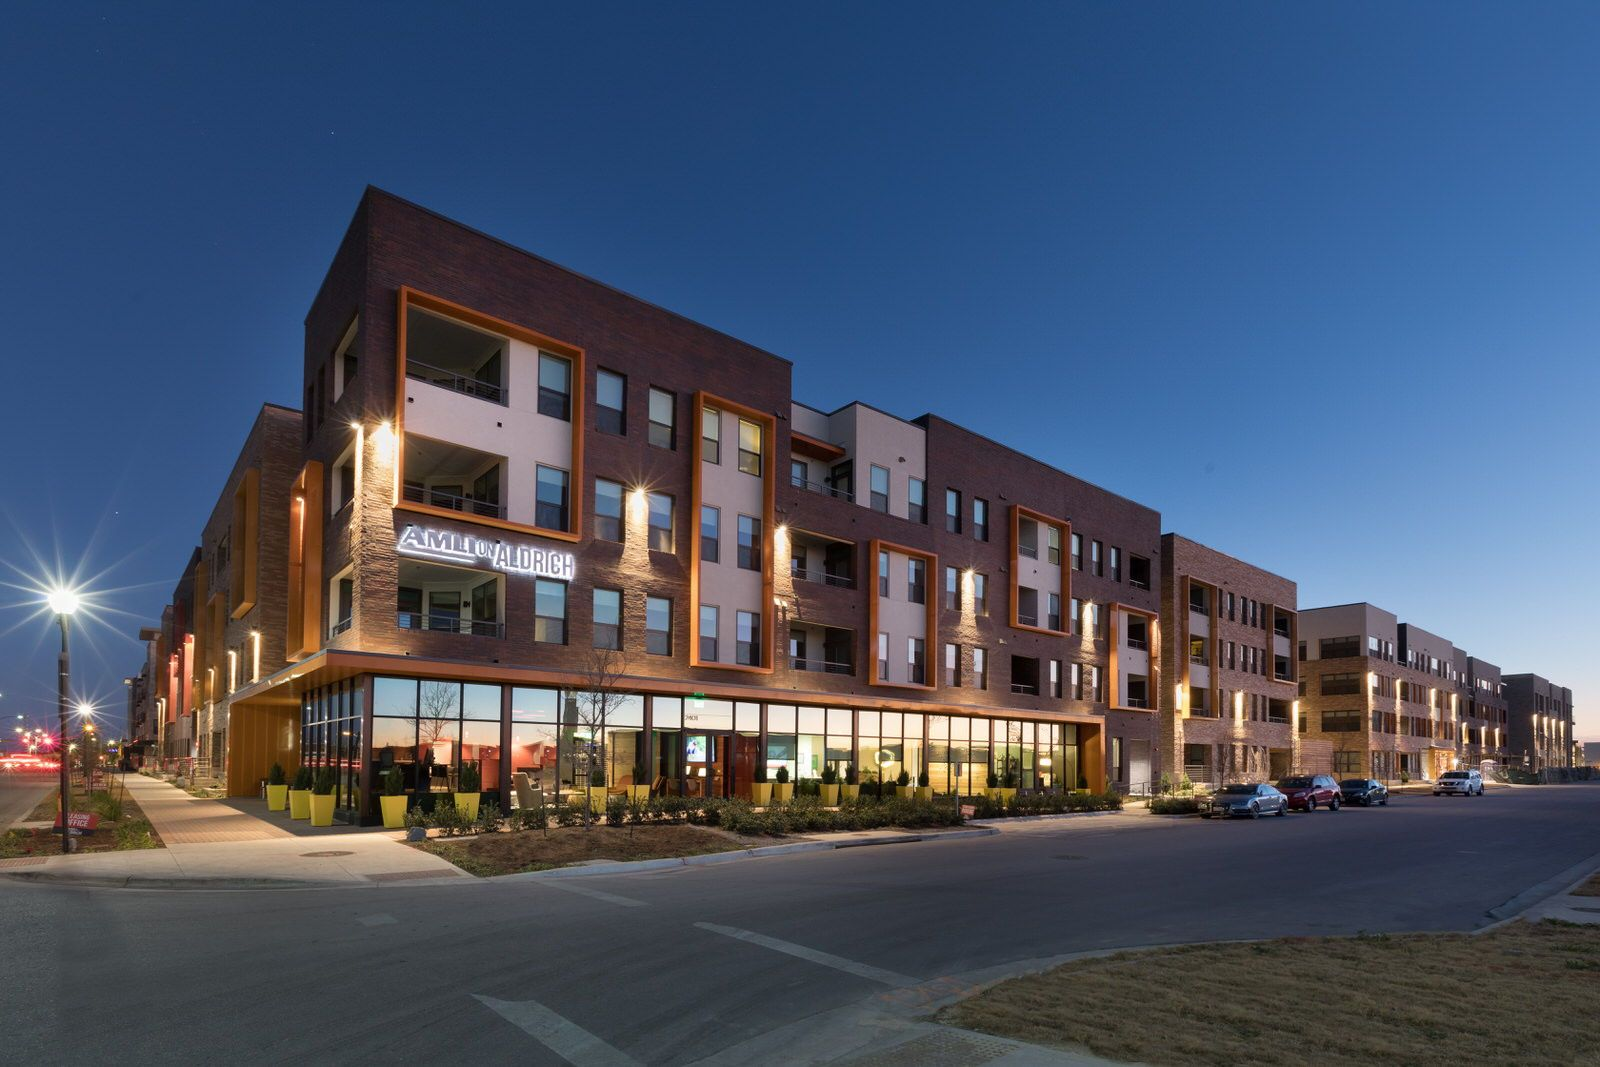 The brand new luxury apartments at AMLI on Aldrich are